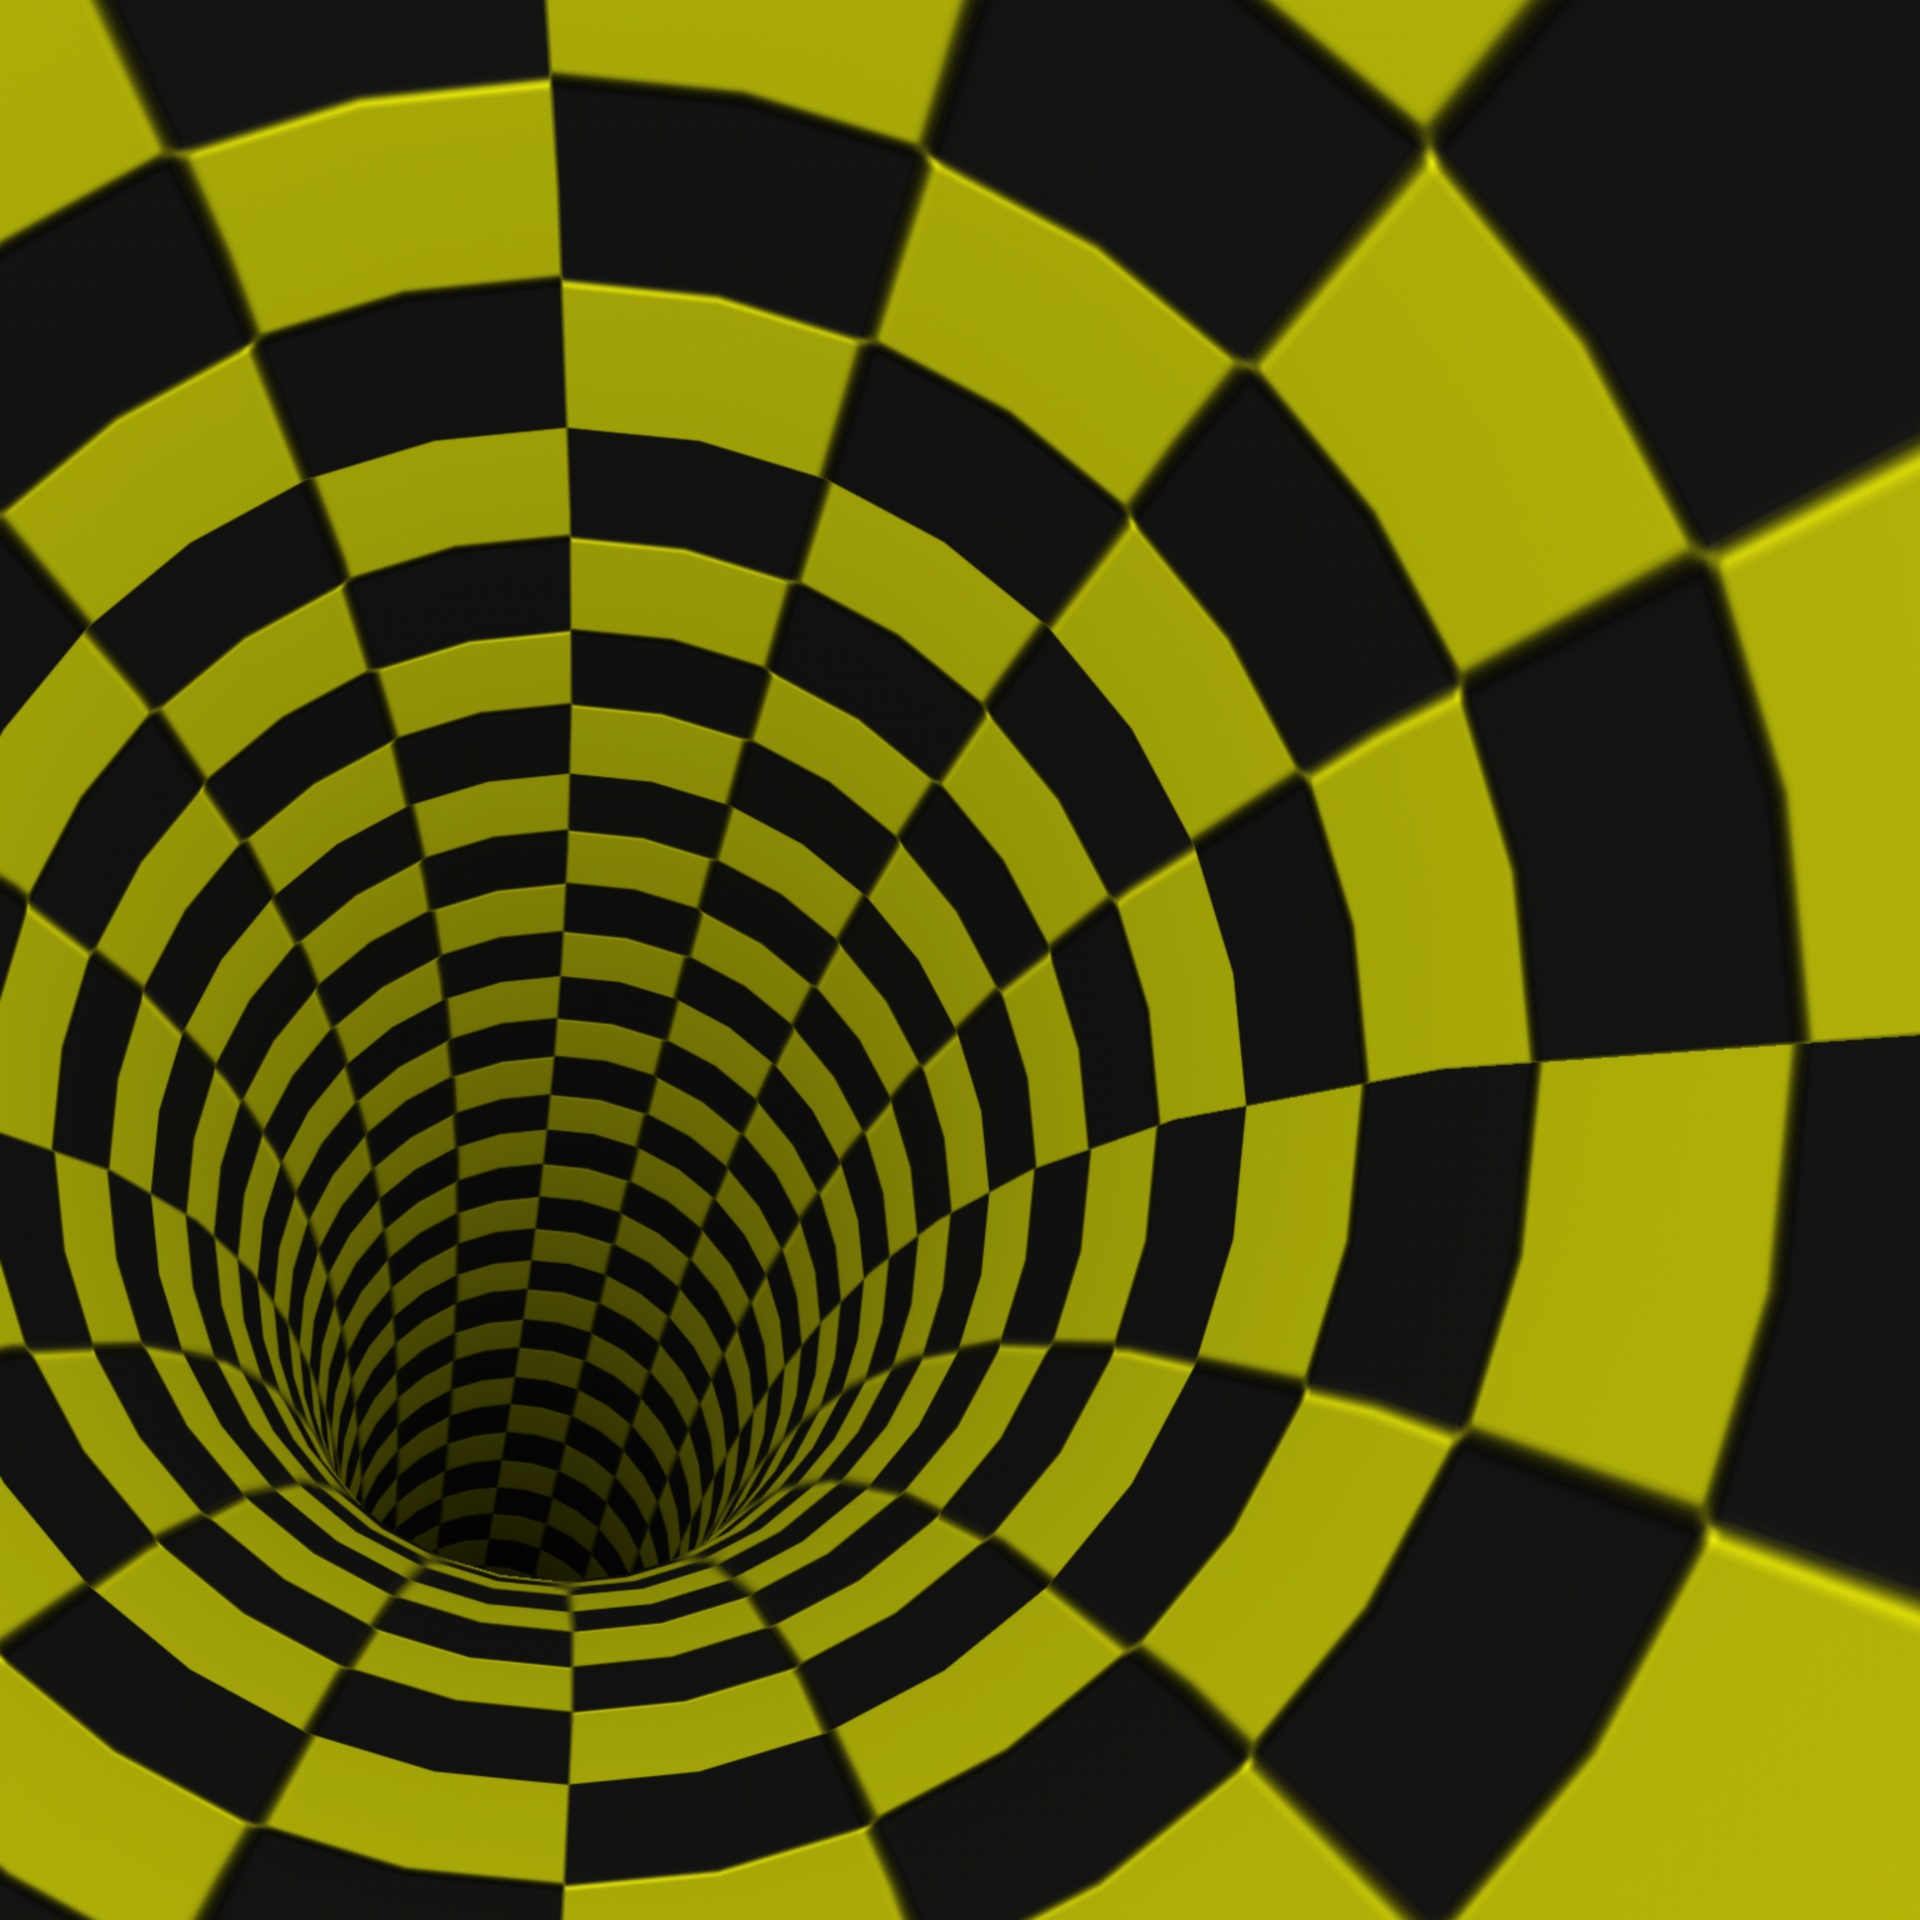 Wallpaper Black Yellow Checkerboard Tunnel Free Image From Needpix Com